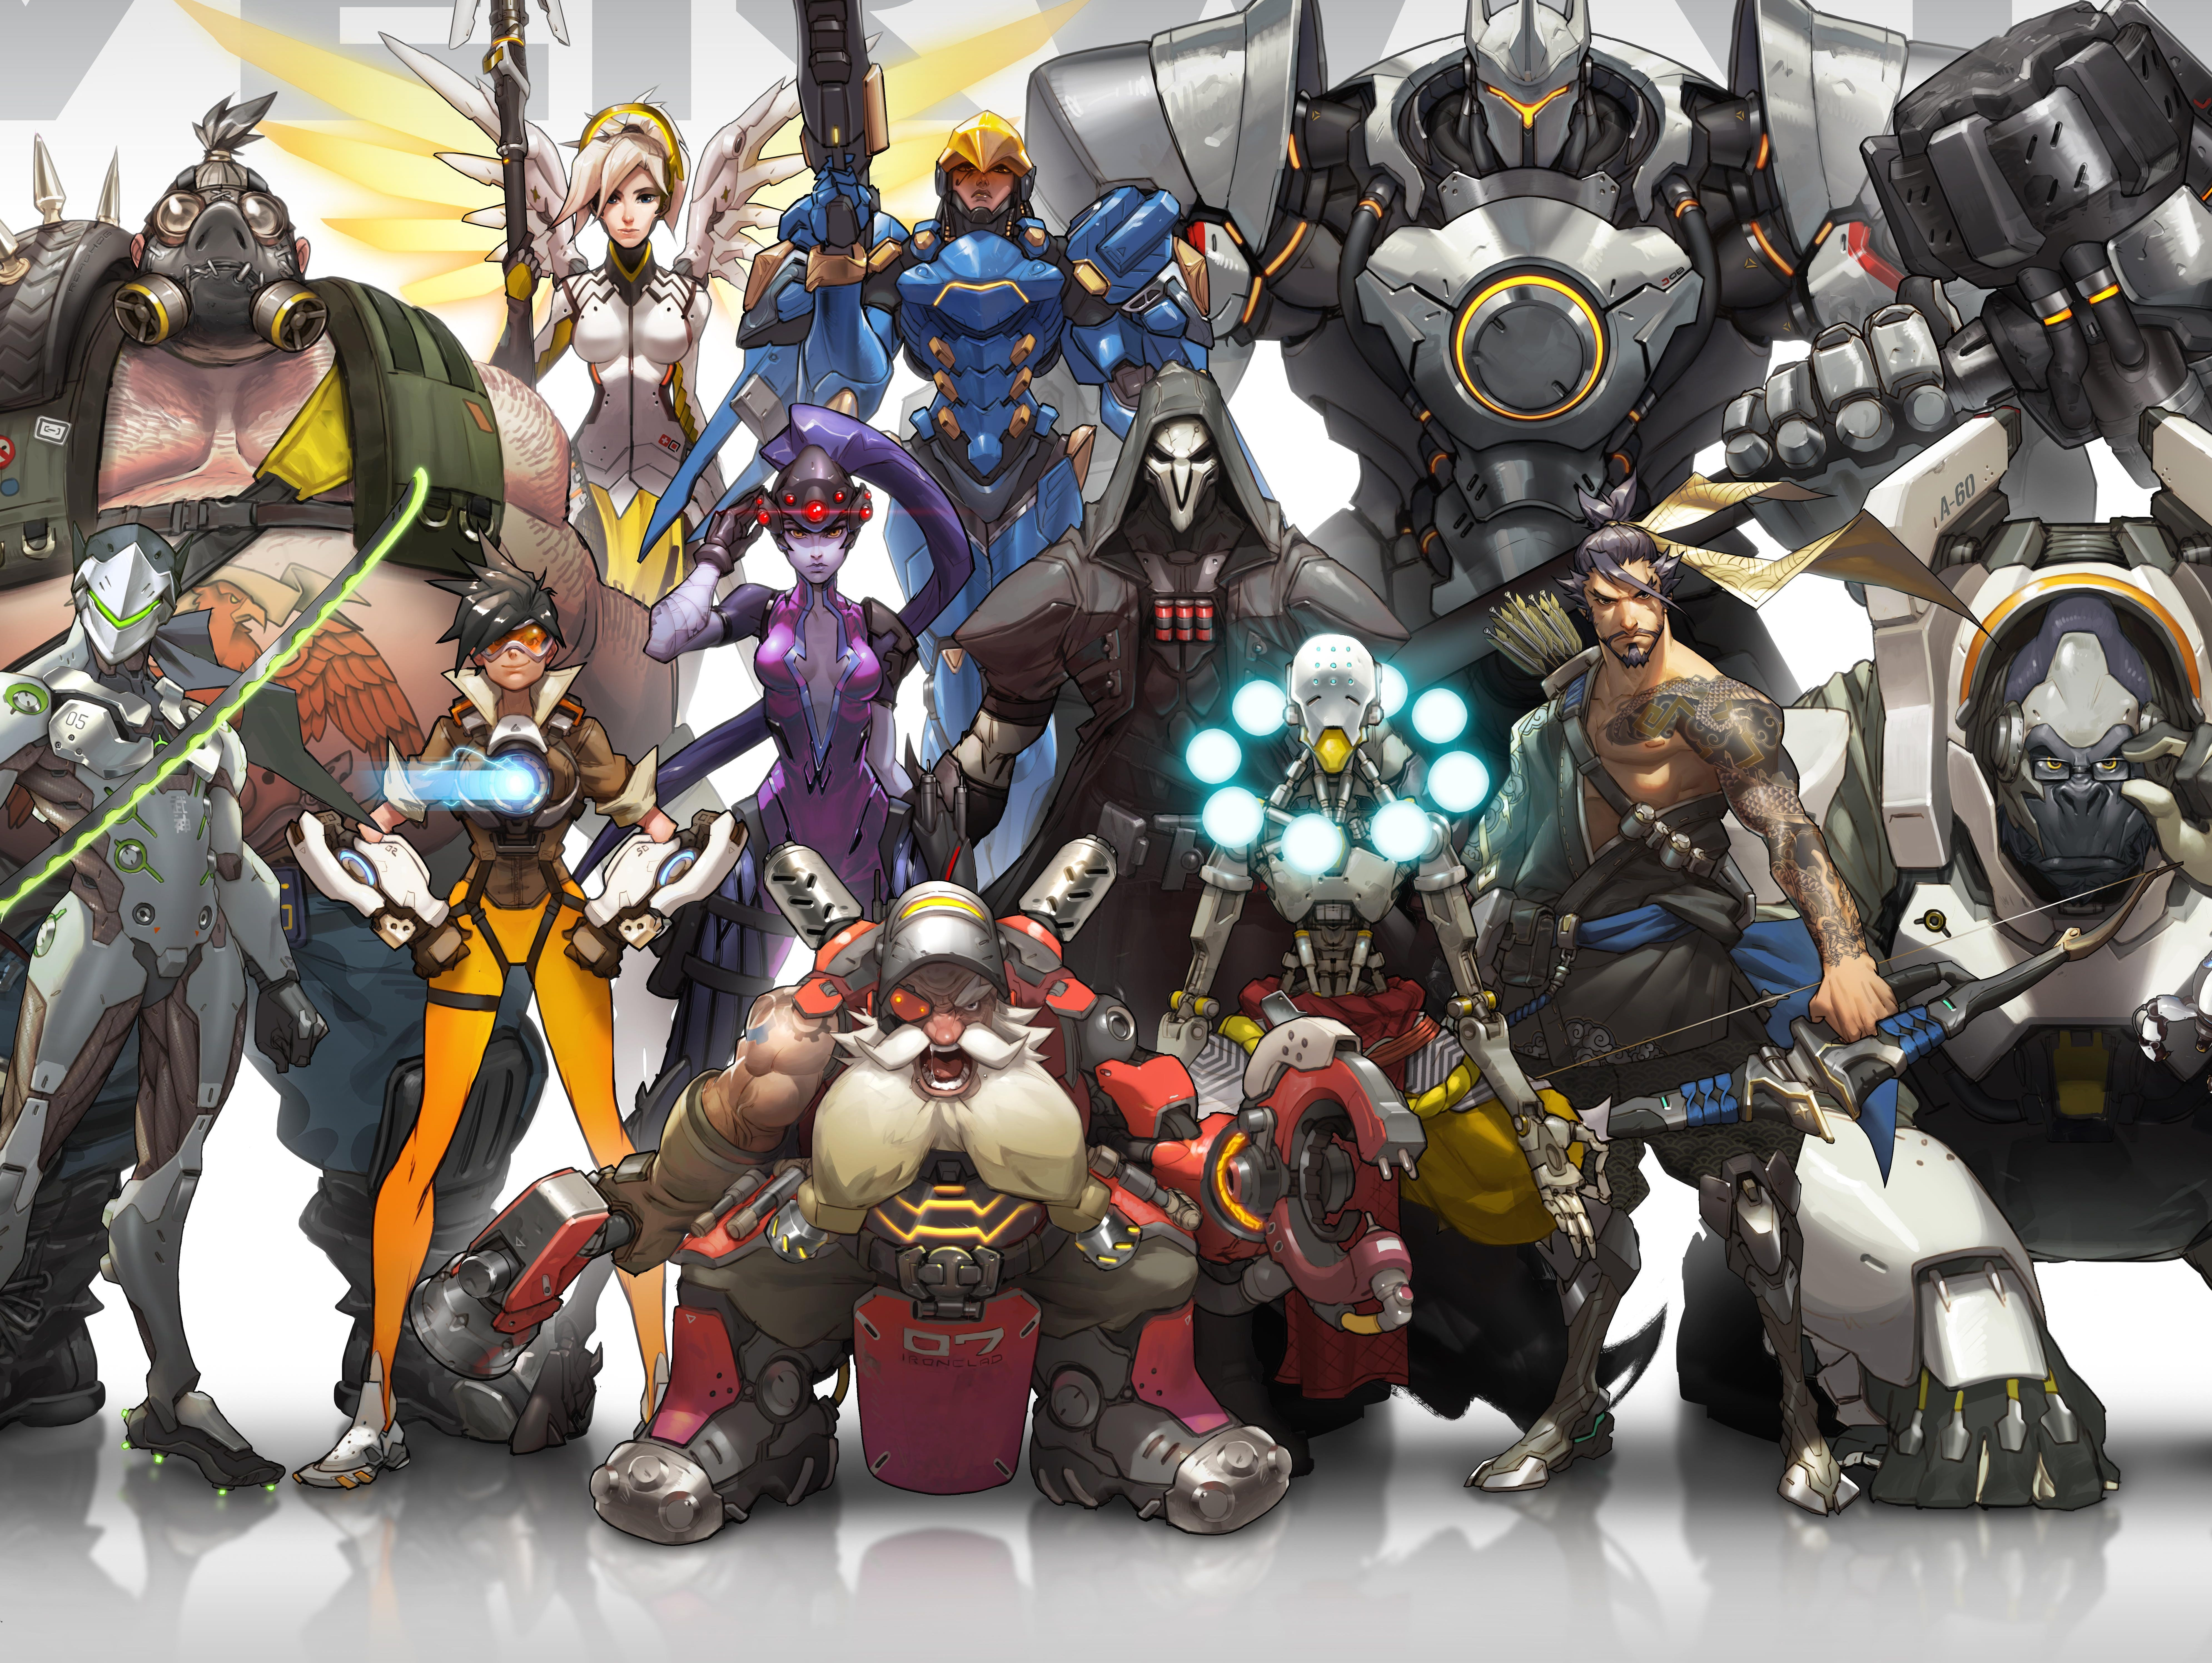 A selection of heroes appearing in the Blizzard game 'Overwatch.'